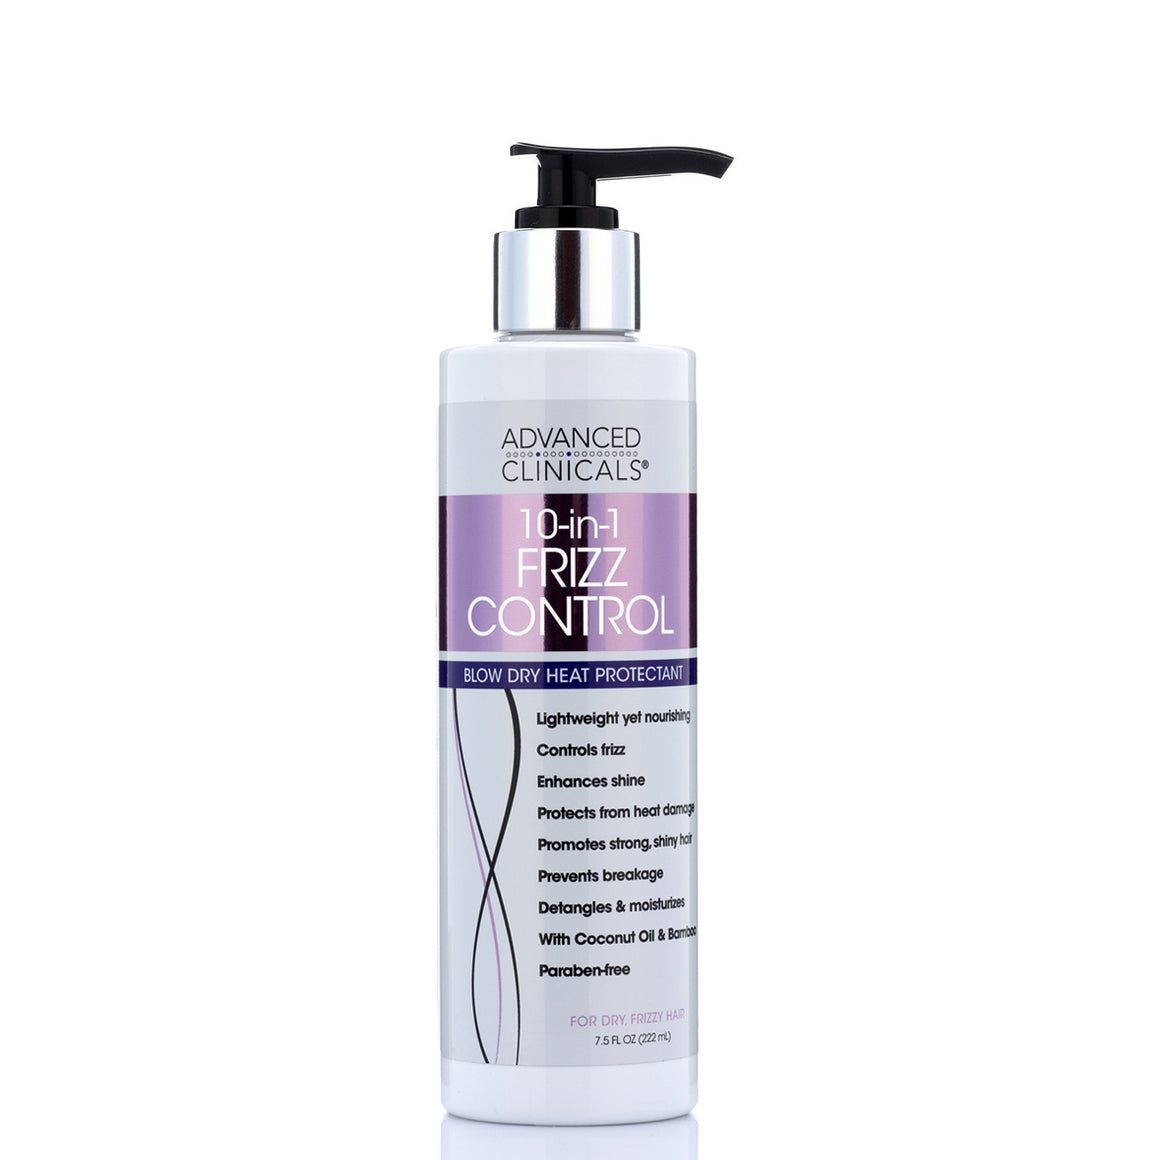 10-in-1 Frizz Control